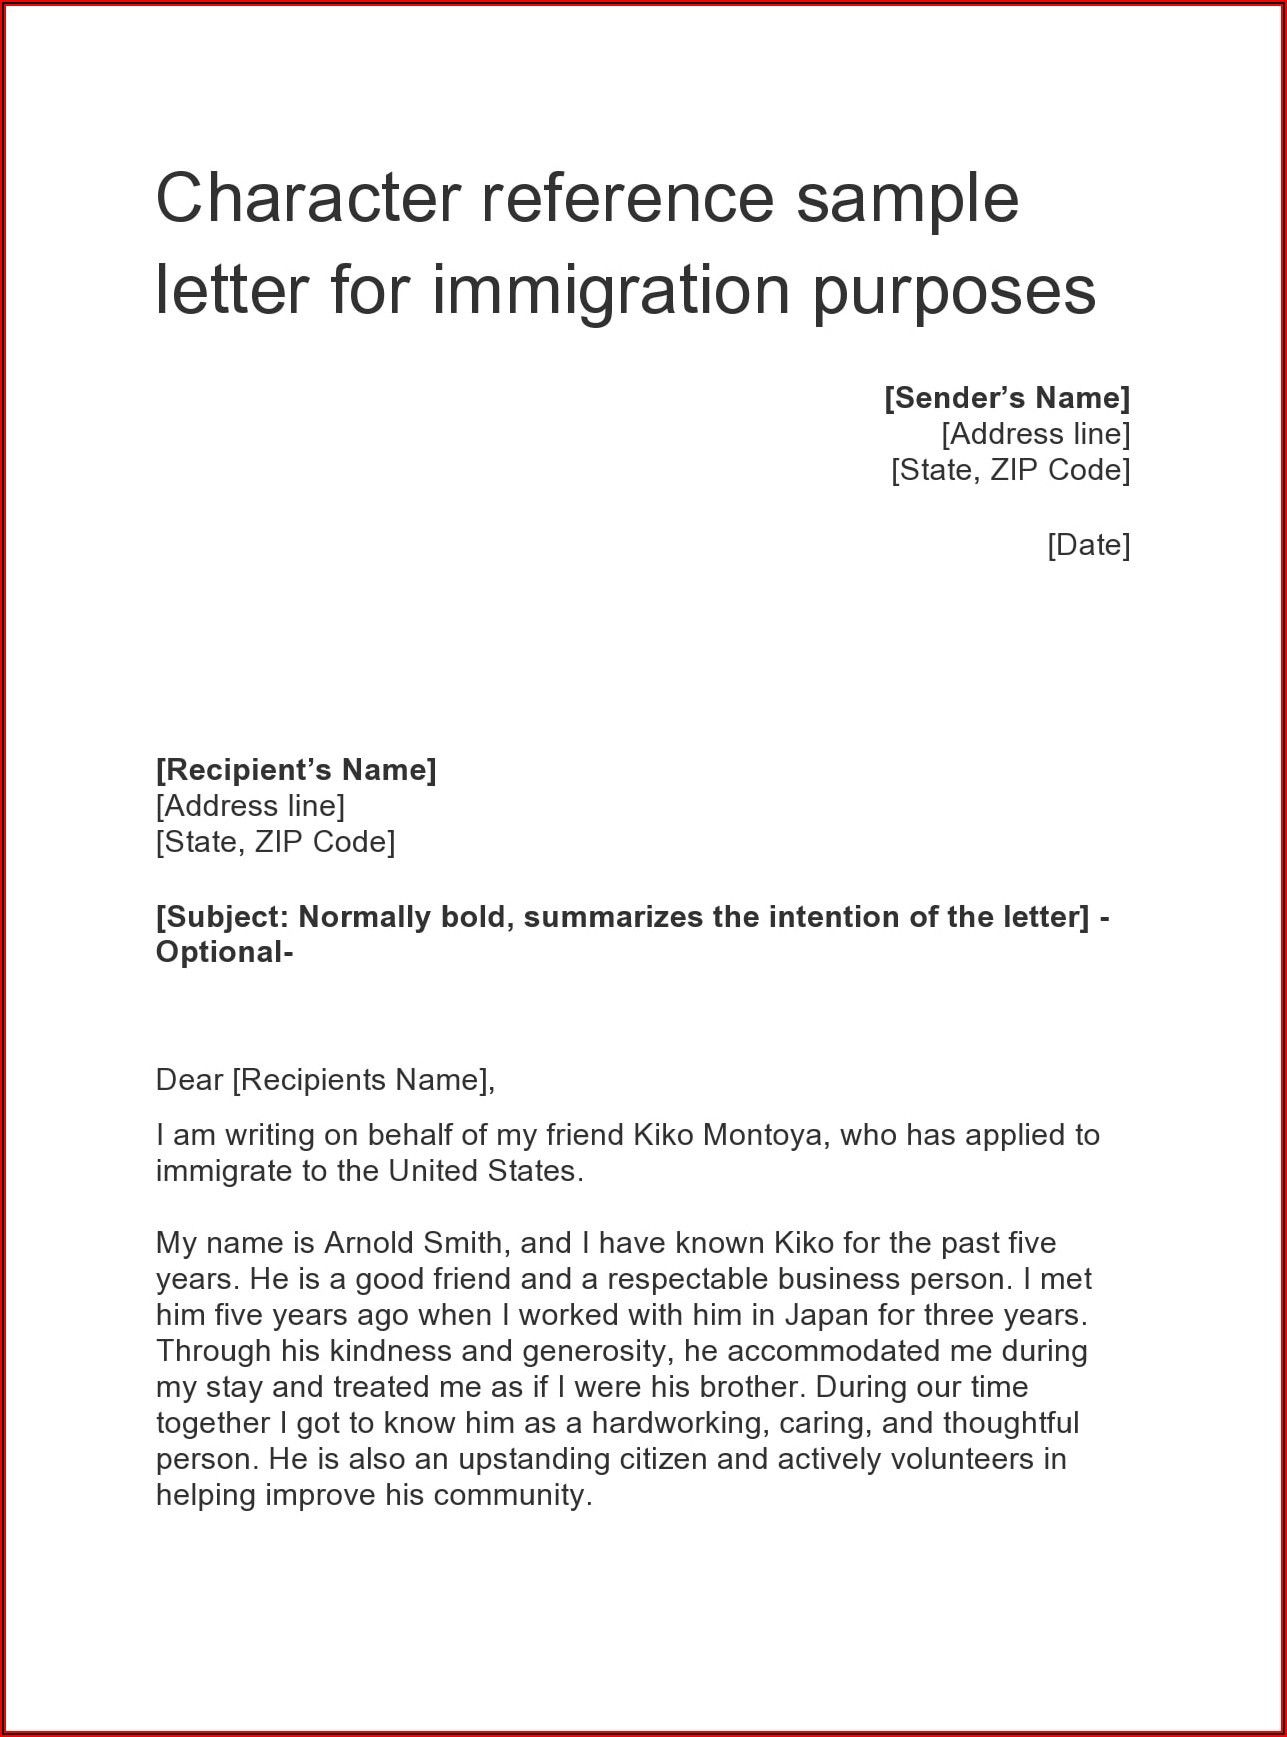 Character Reference Letter For A Friend For Immigration Purposes